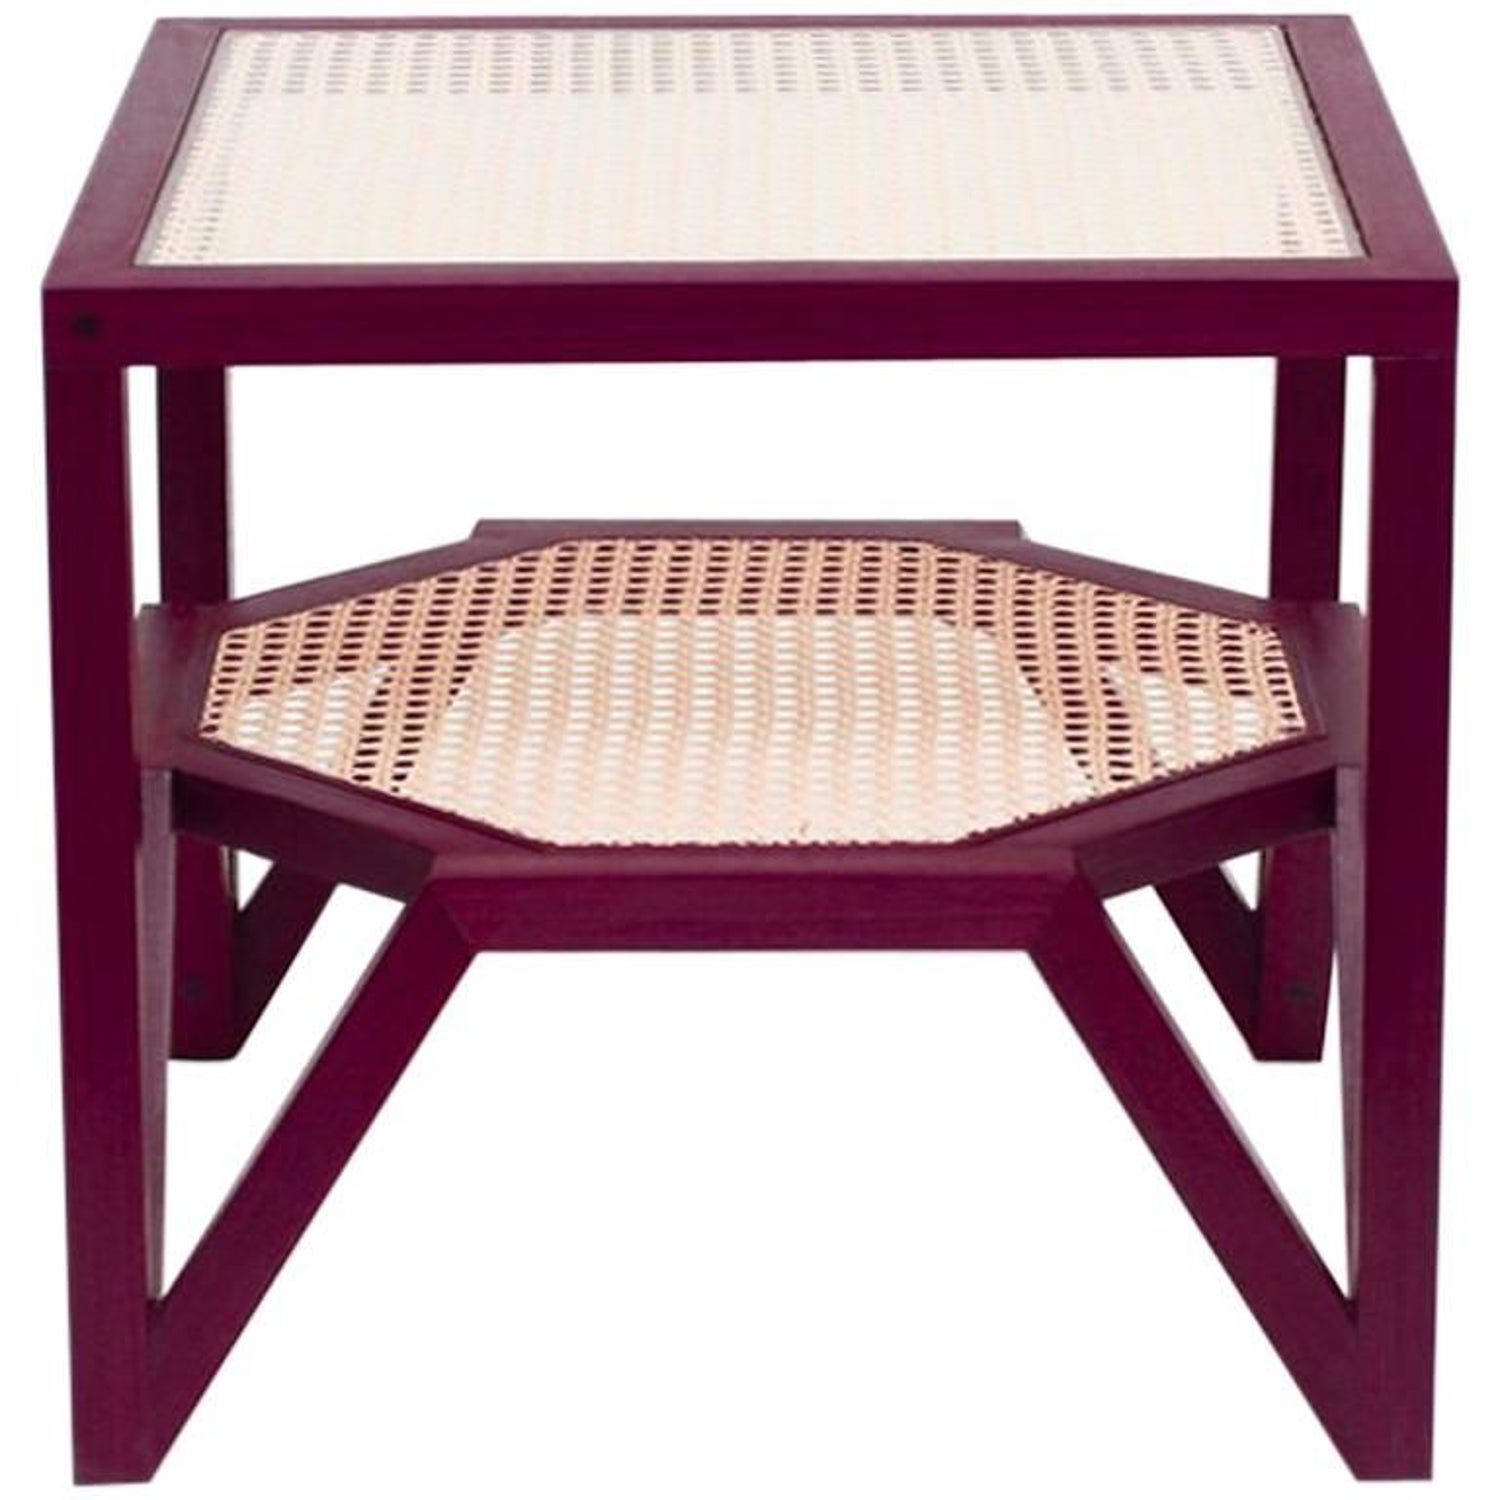 purple heart wood furniture. Moiré Wood And Cane Side Table By O Formigueiro Purple Heart Furniture